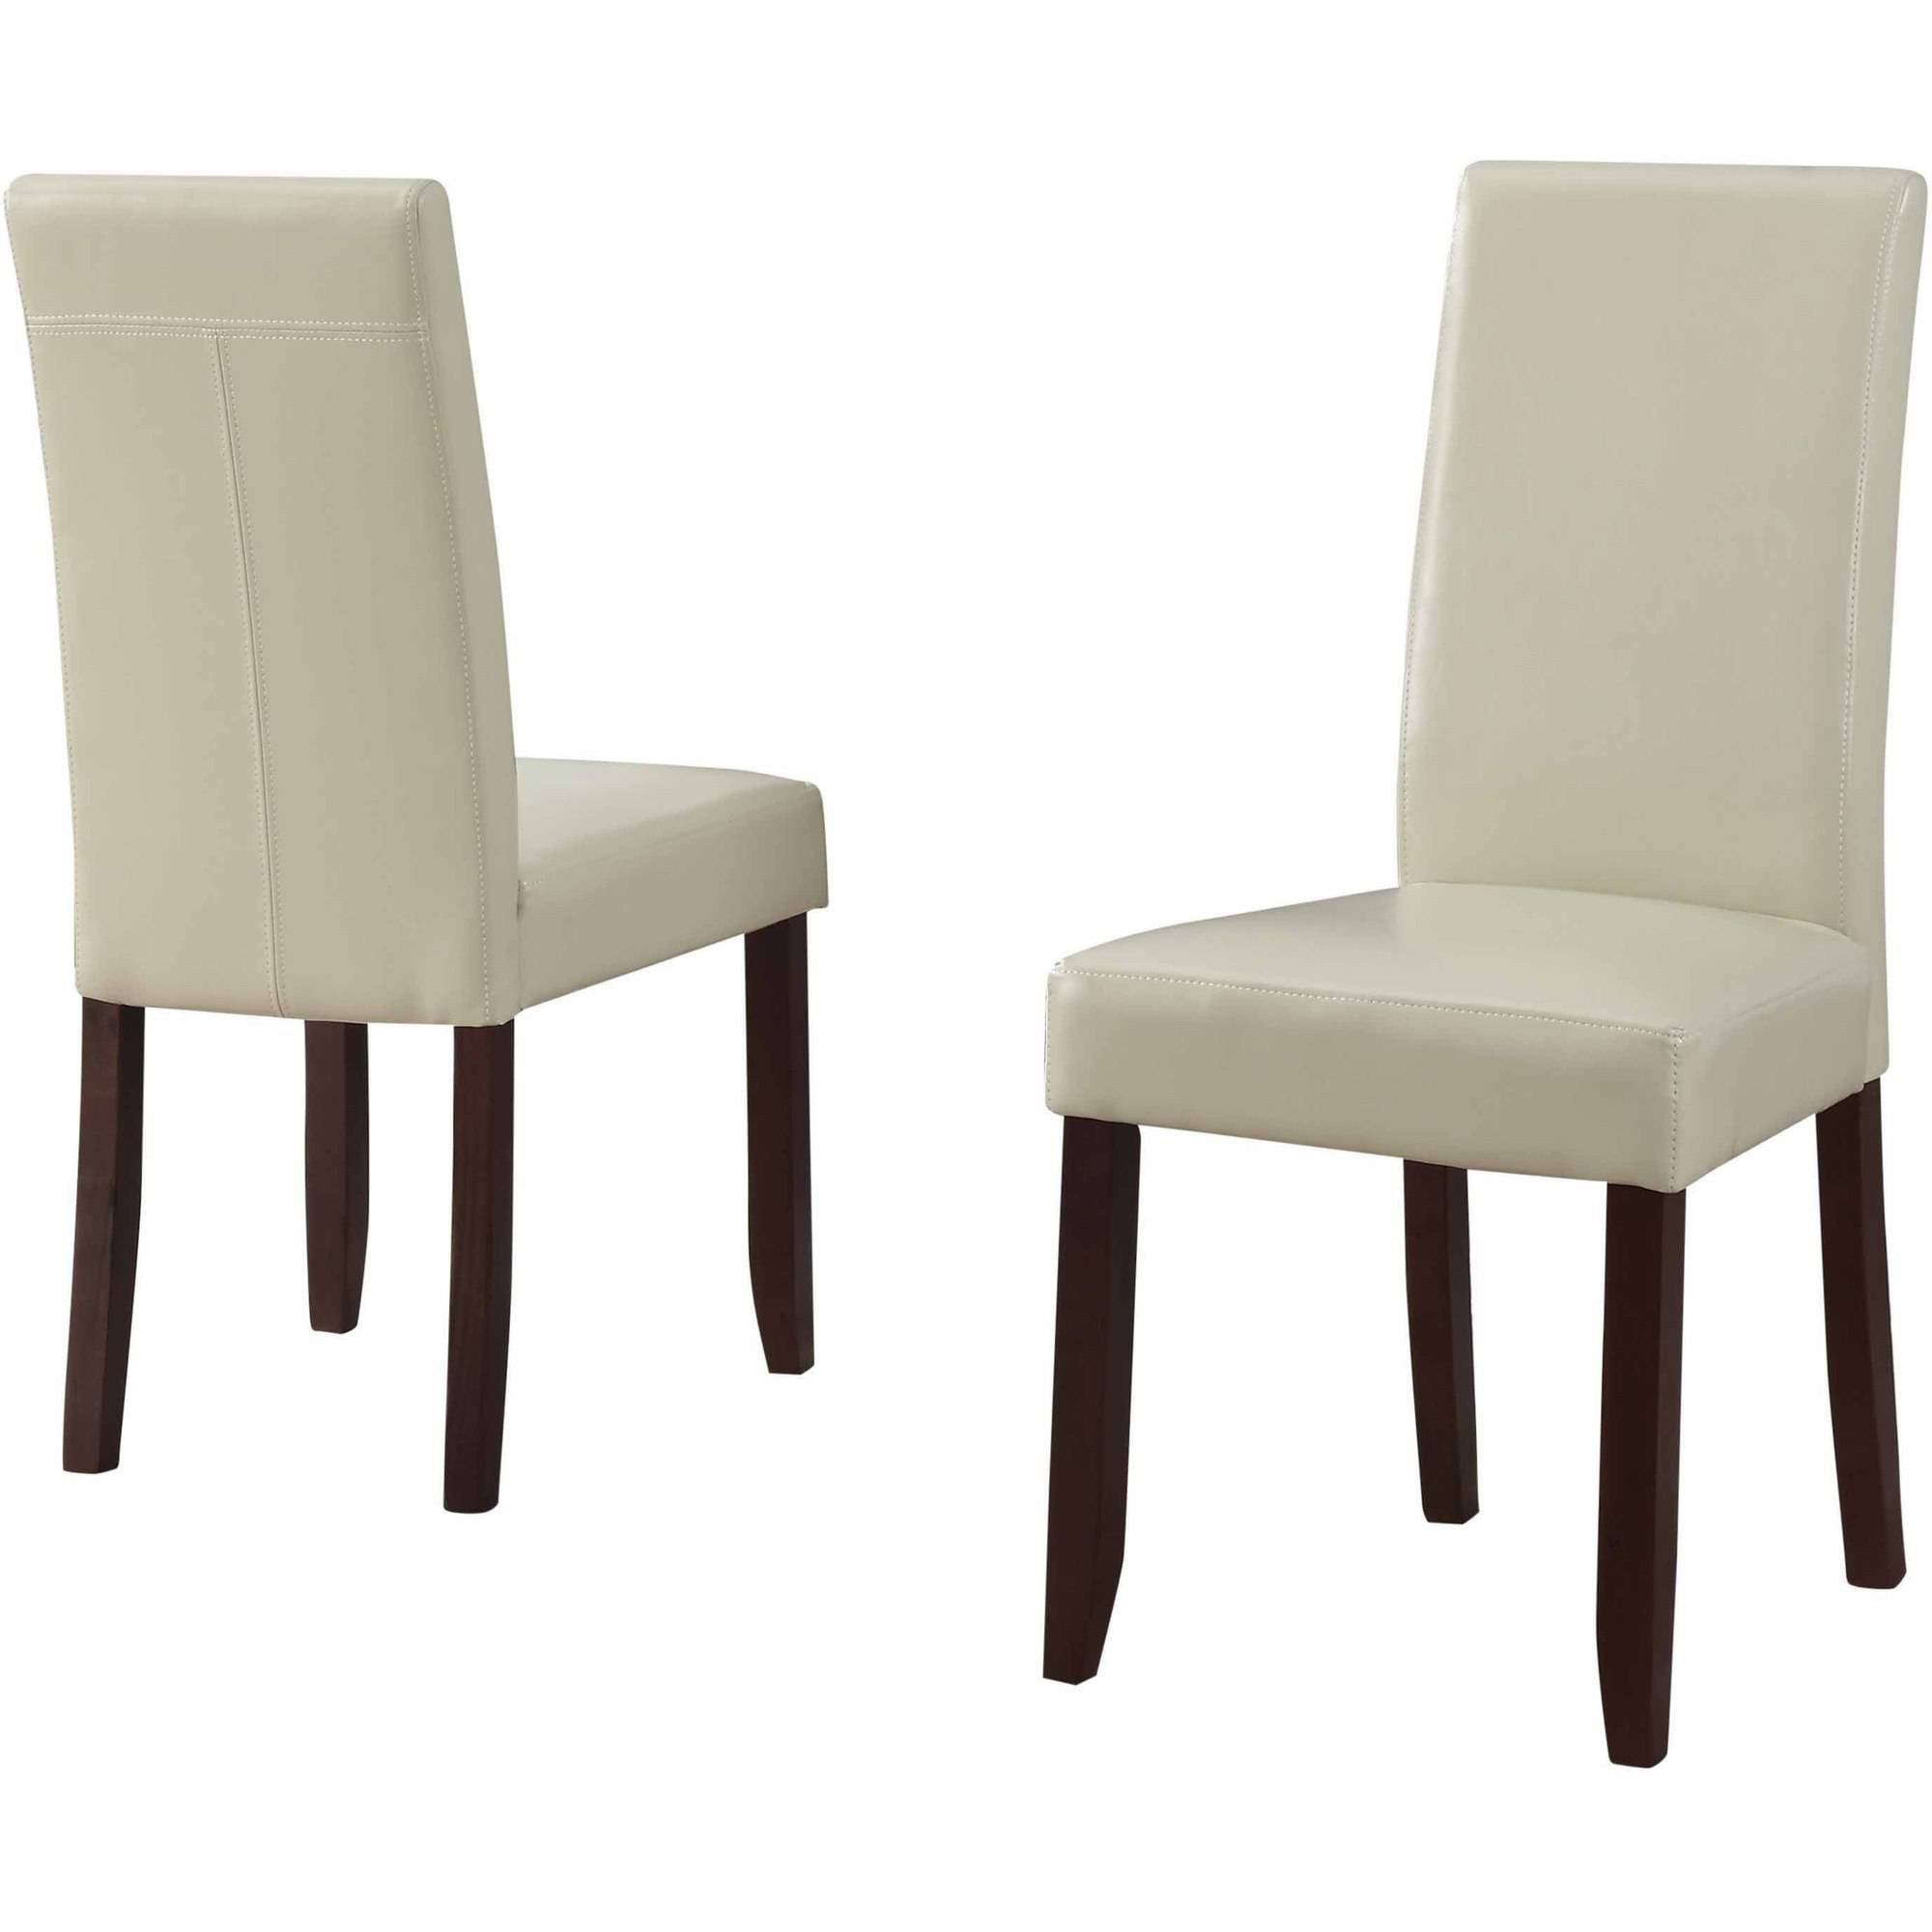 faux leather restaurant dining chairs. $100-$150 faux leather restaurant dining chairs r